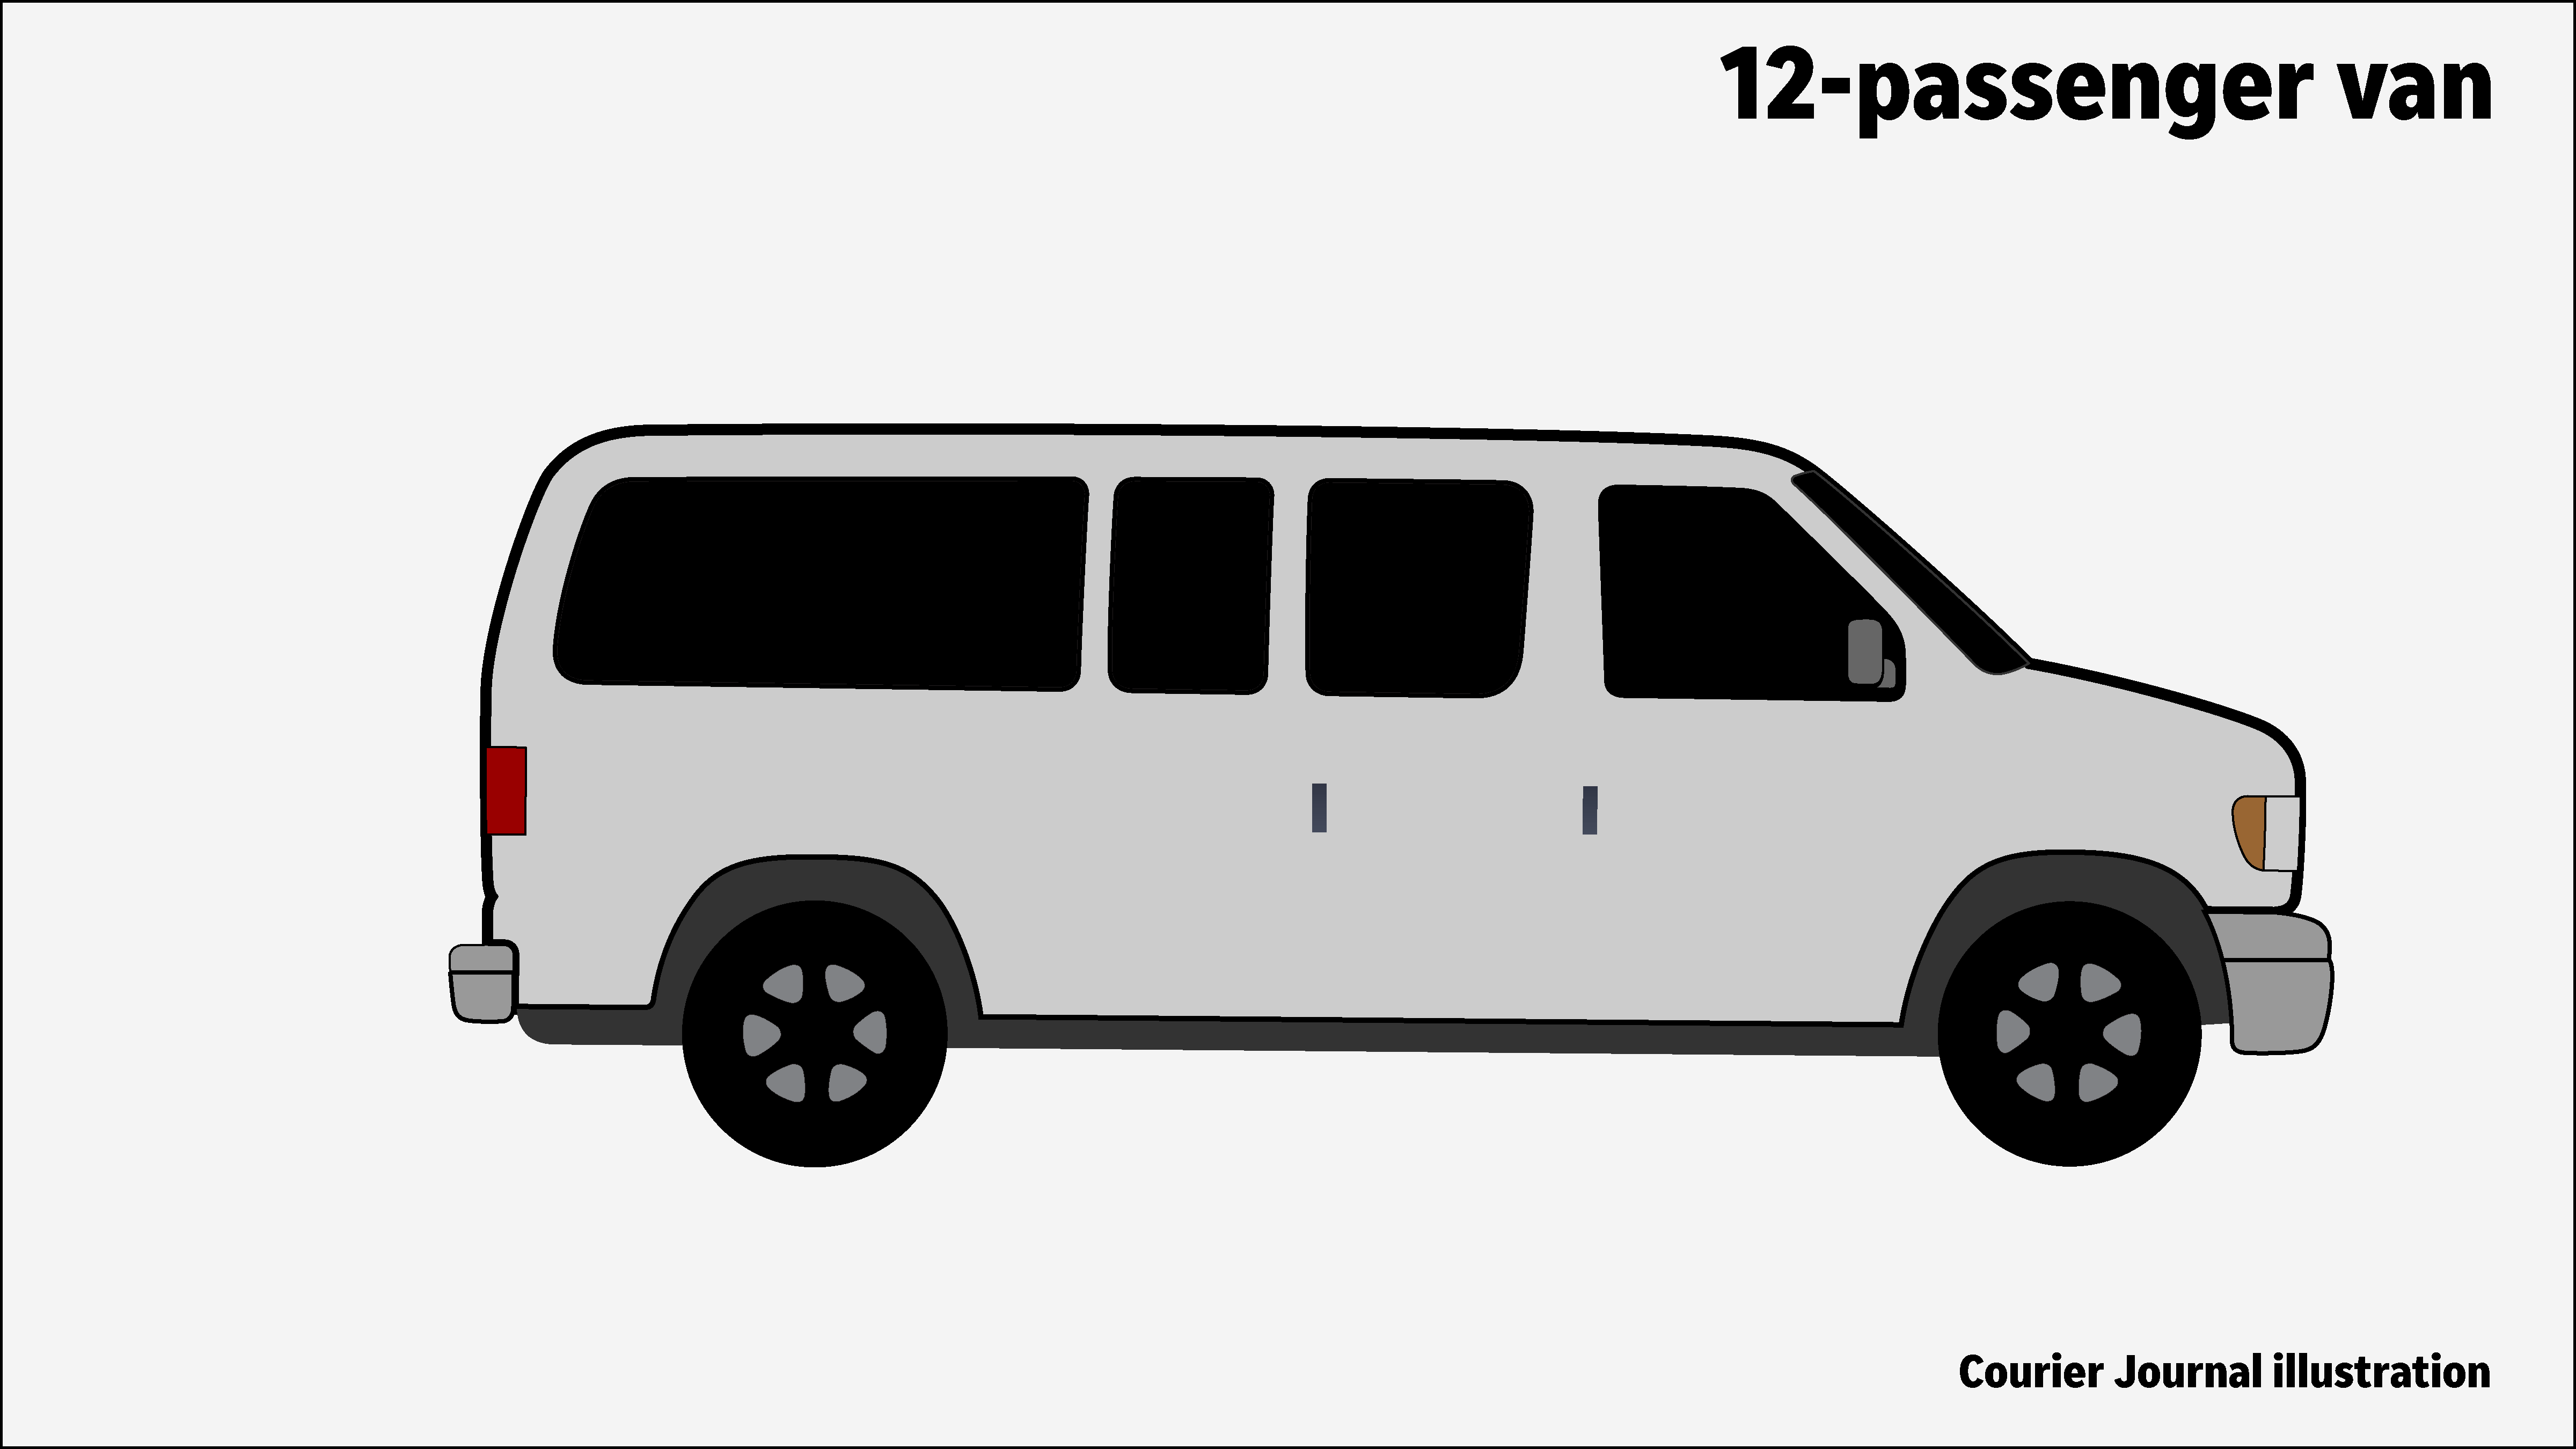 Danger From Old 15 Passenger Vans Echoes Carrollton Bus Crash Style Dodge Van Fuse Box Evidence Presented In The Salliotte Lawsuit Shows Ford Product Planners Recommended Extending Wheelbase And Adding Dual Rear Wheels Which Make